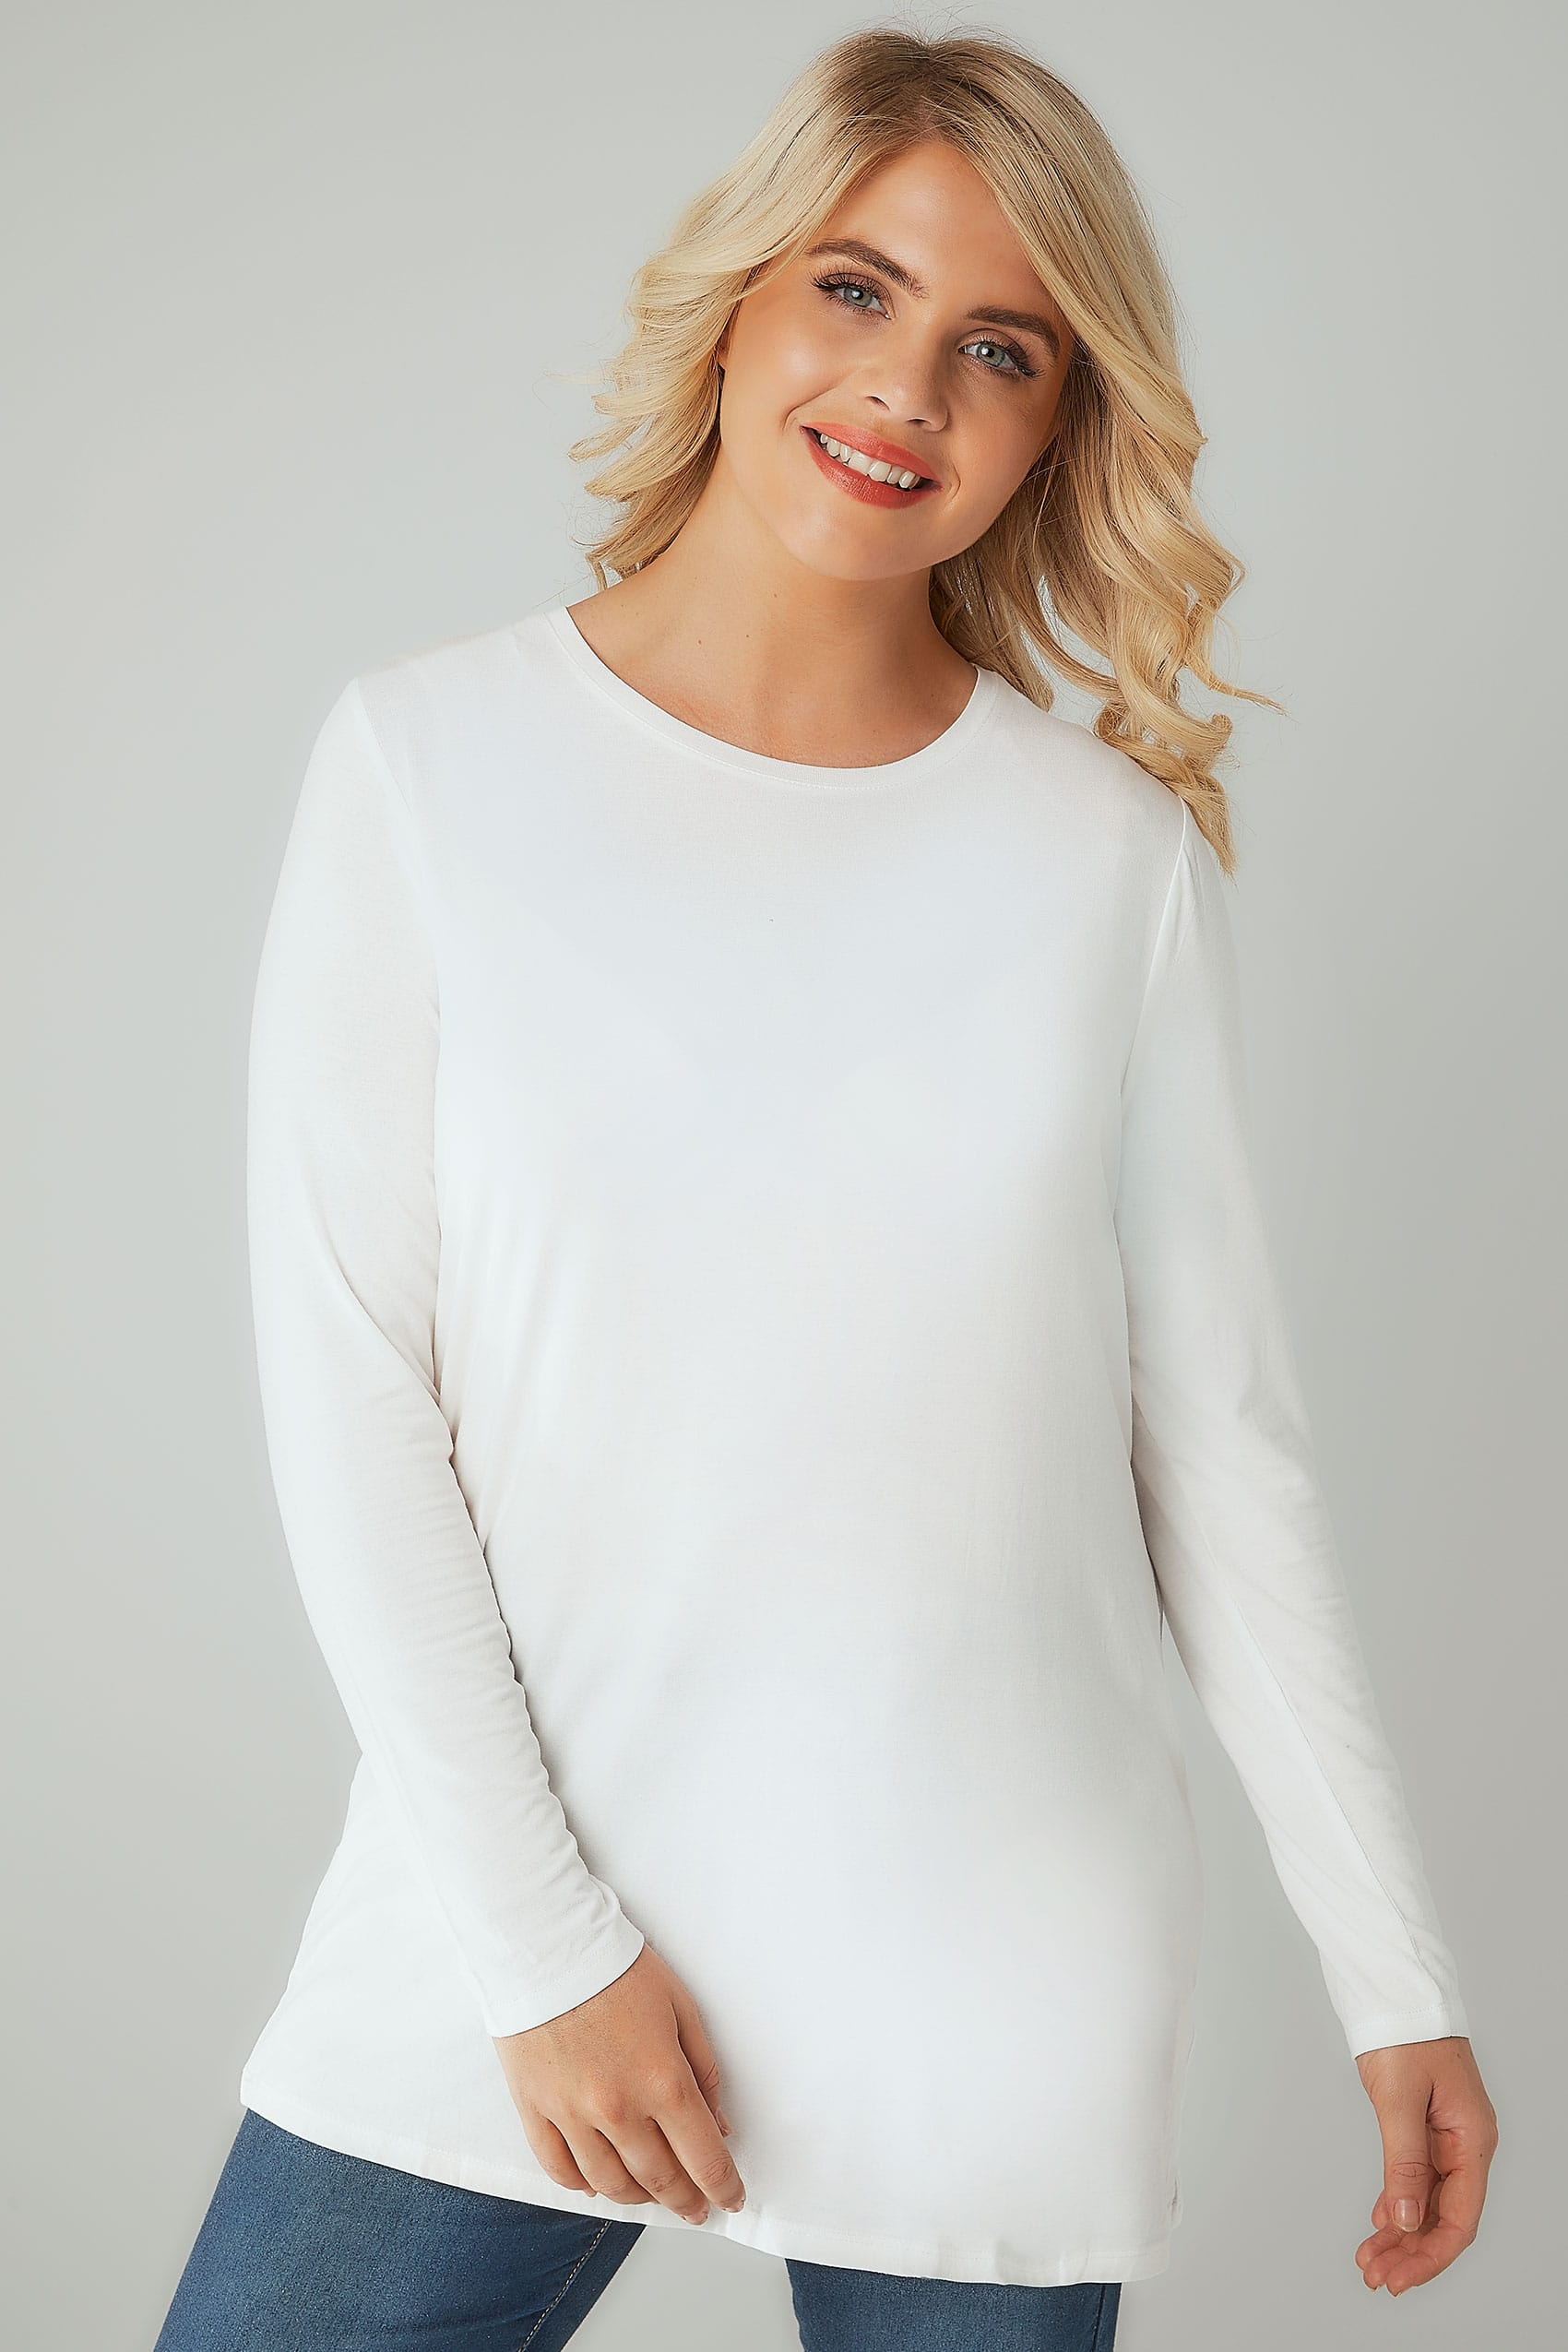 White Long Sleeve Soft Touch Jersey Top, Plus Size 16 To 36-1065